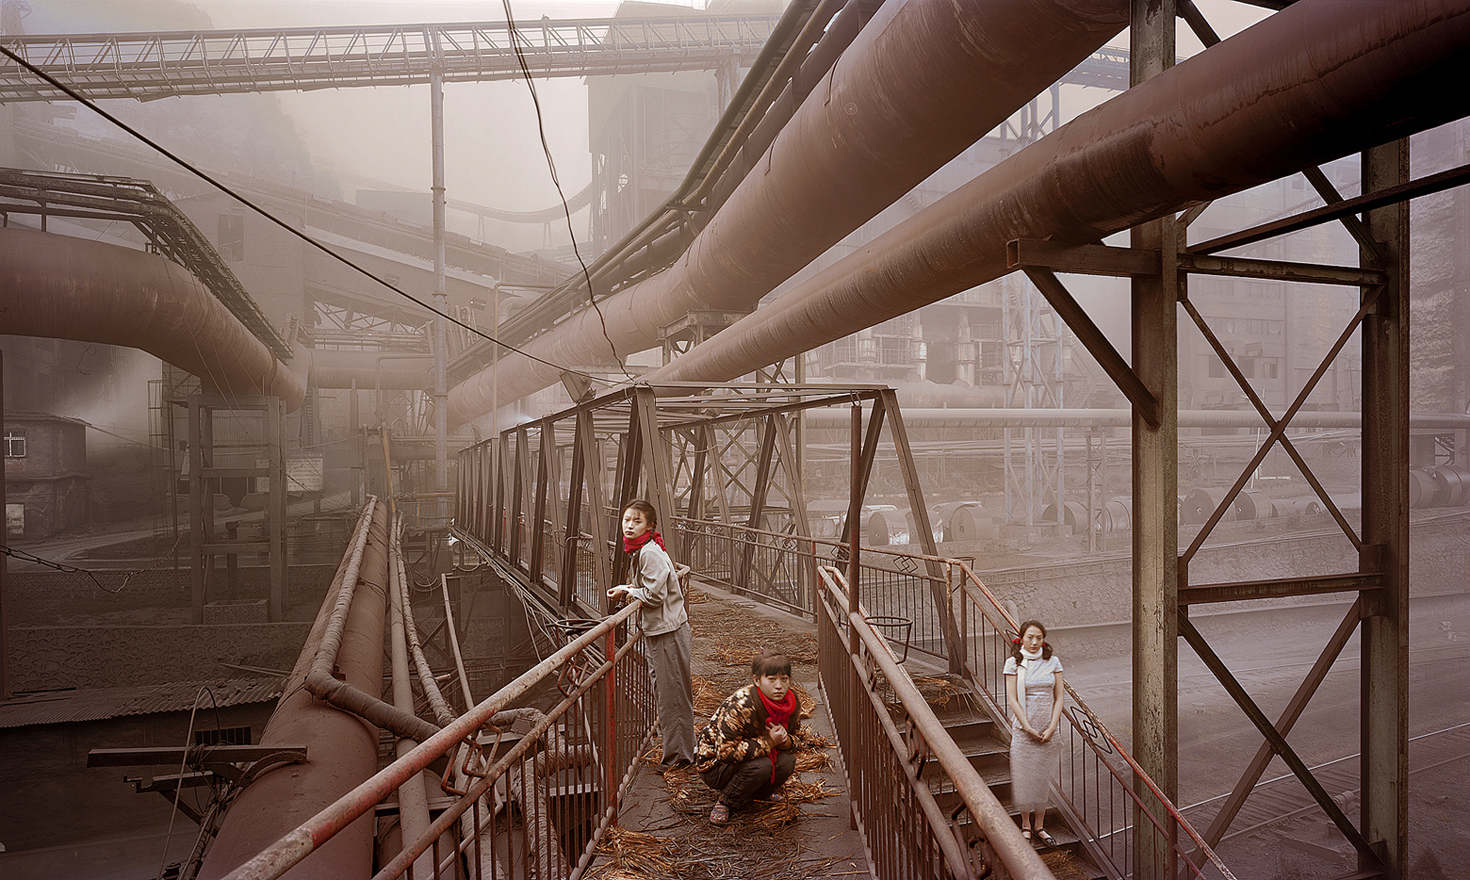 Bridges (The Great Third Front Series), 2008, 43.3 x 70.9 inches, Chromogenic photograph (Edition 5 of 12)